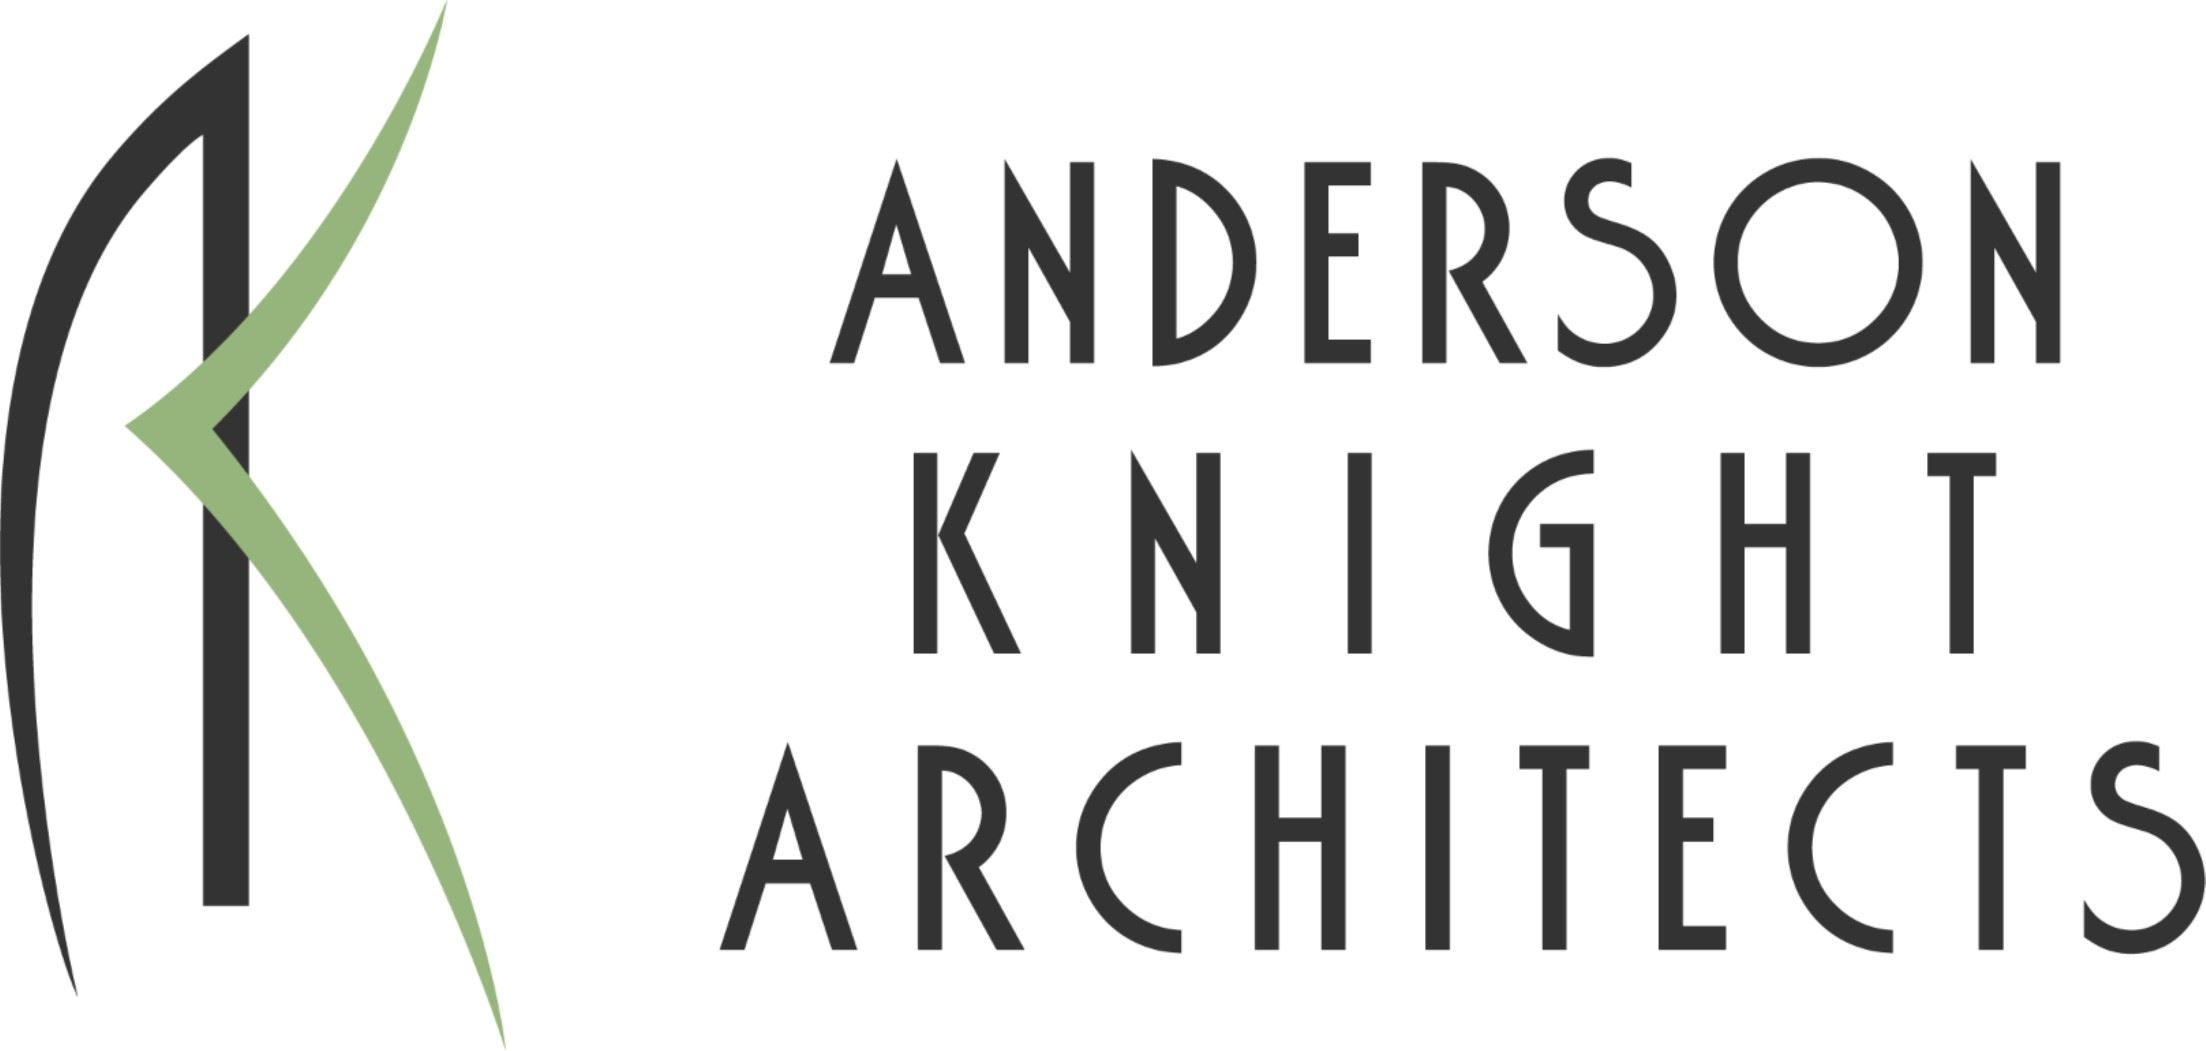 Anderson Knight Architects